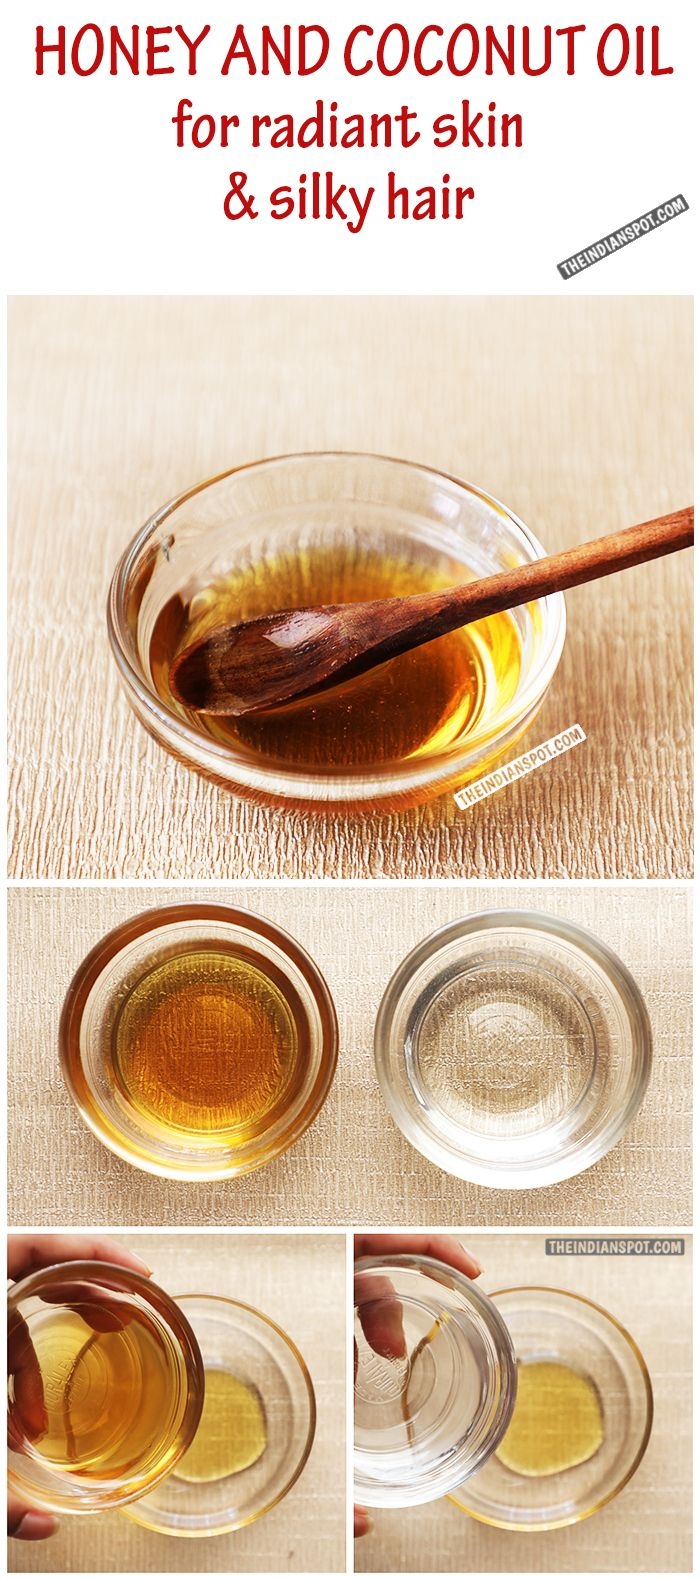 Coconut oil and honey for face and hair